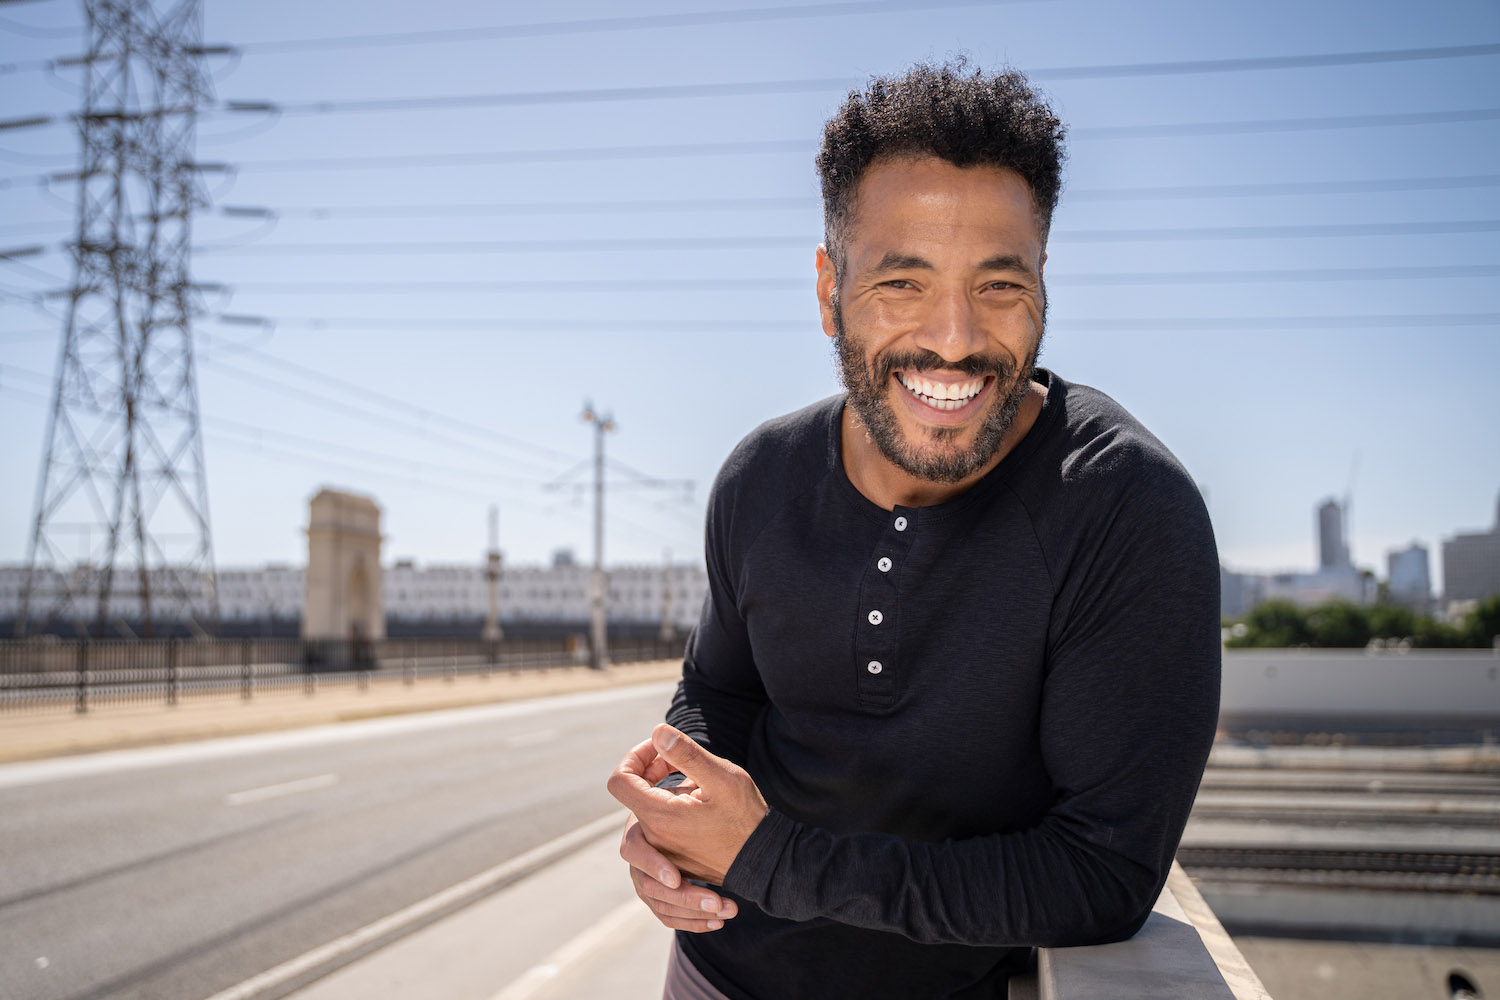 Lifestyle-On-Location-Model-Onmodel-Damion-Lloyd-Photography-Commercial-Product-Apparel-Clothing-Los-Angeles-Orange-County-male-man-GLYDER-sportswear-outdoor-city-black-shirt-buttons-smile-downtown